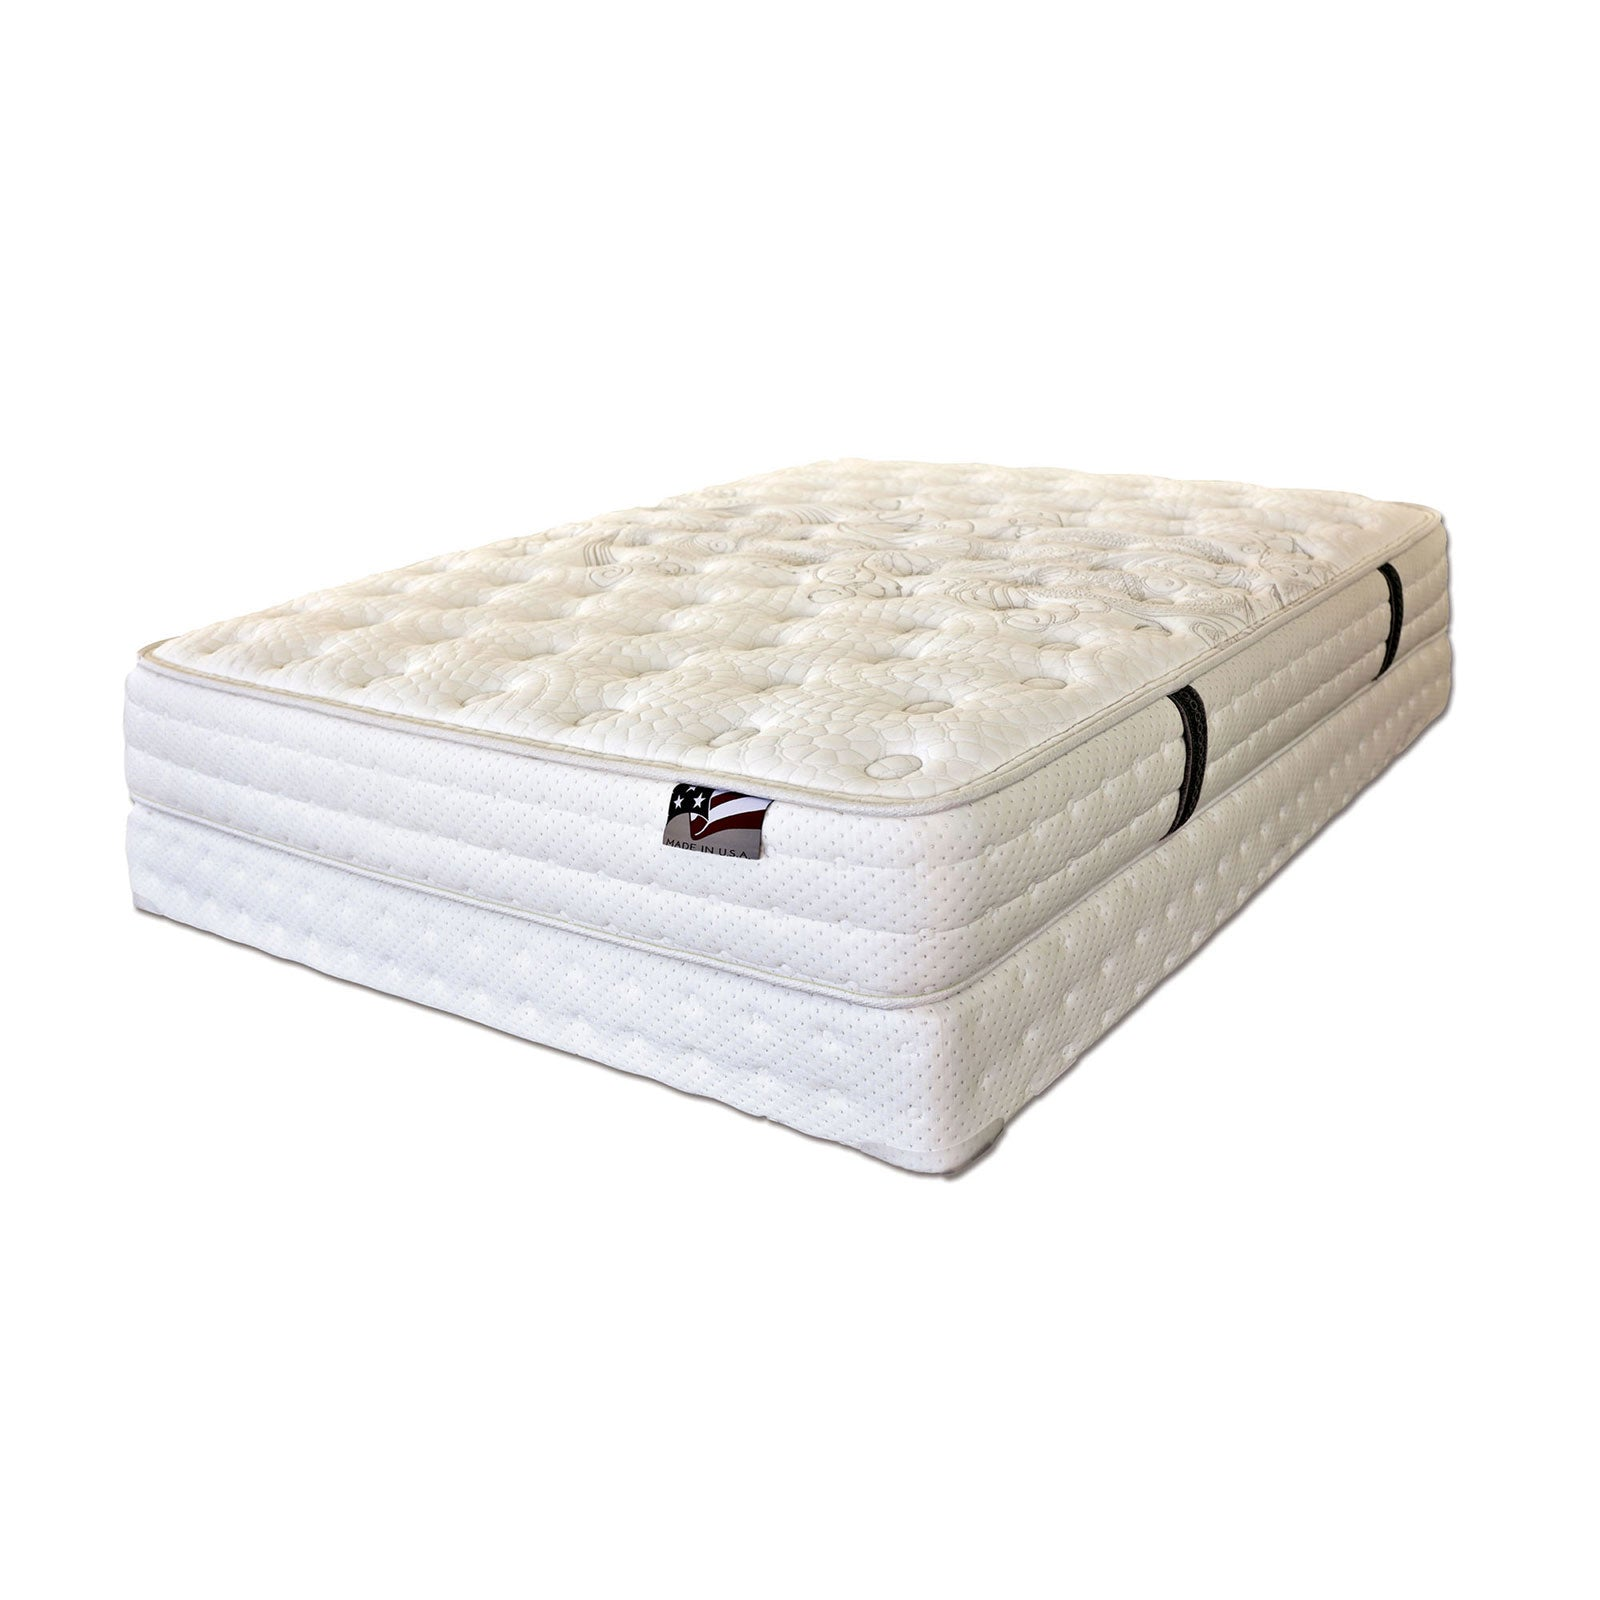 "ALYSSUM III Tight Top W- Mem Foam 12"" Tight Top Mattress, Cal.King (Foundation Sold Separately) - InteriorDesignsToGo.com"